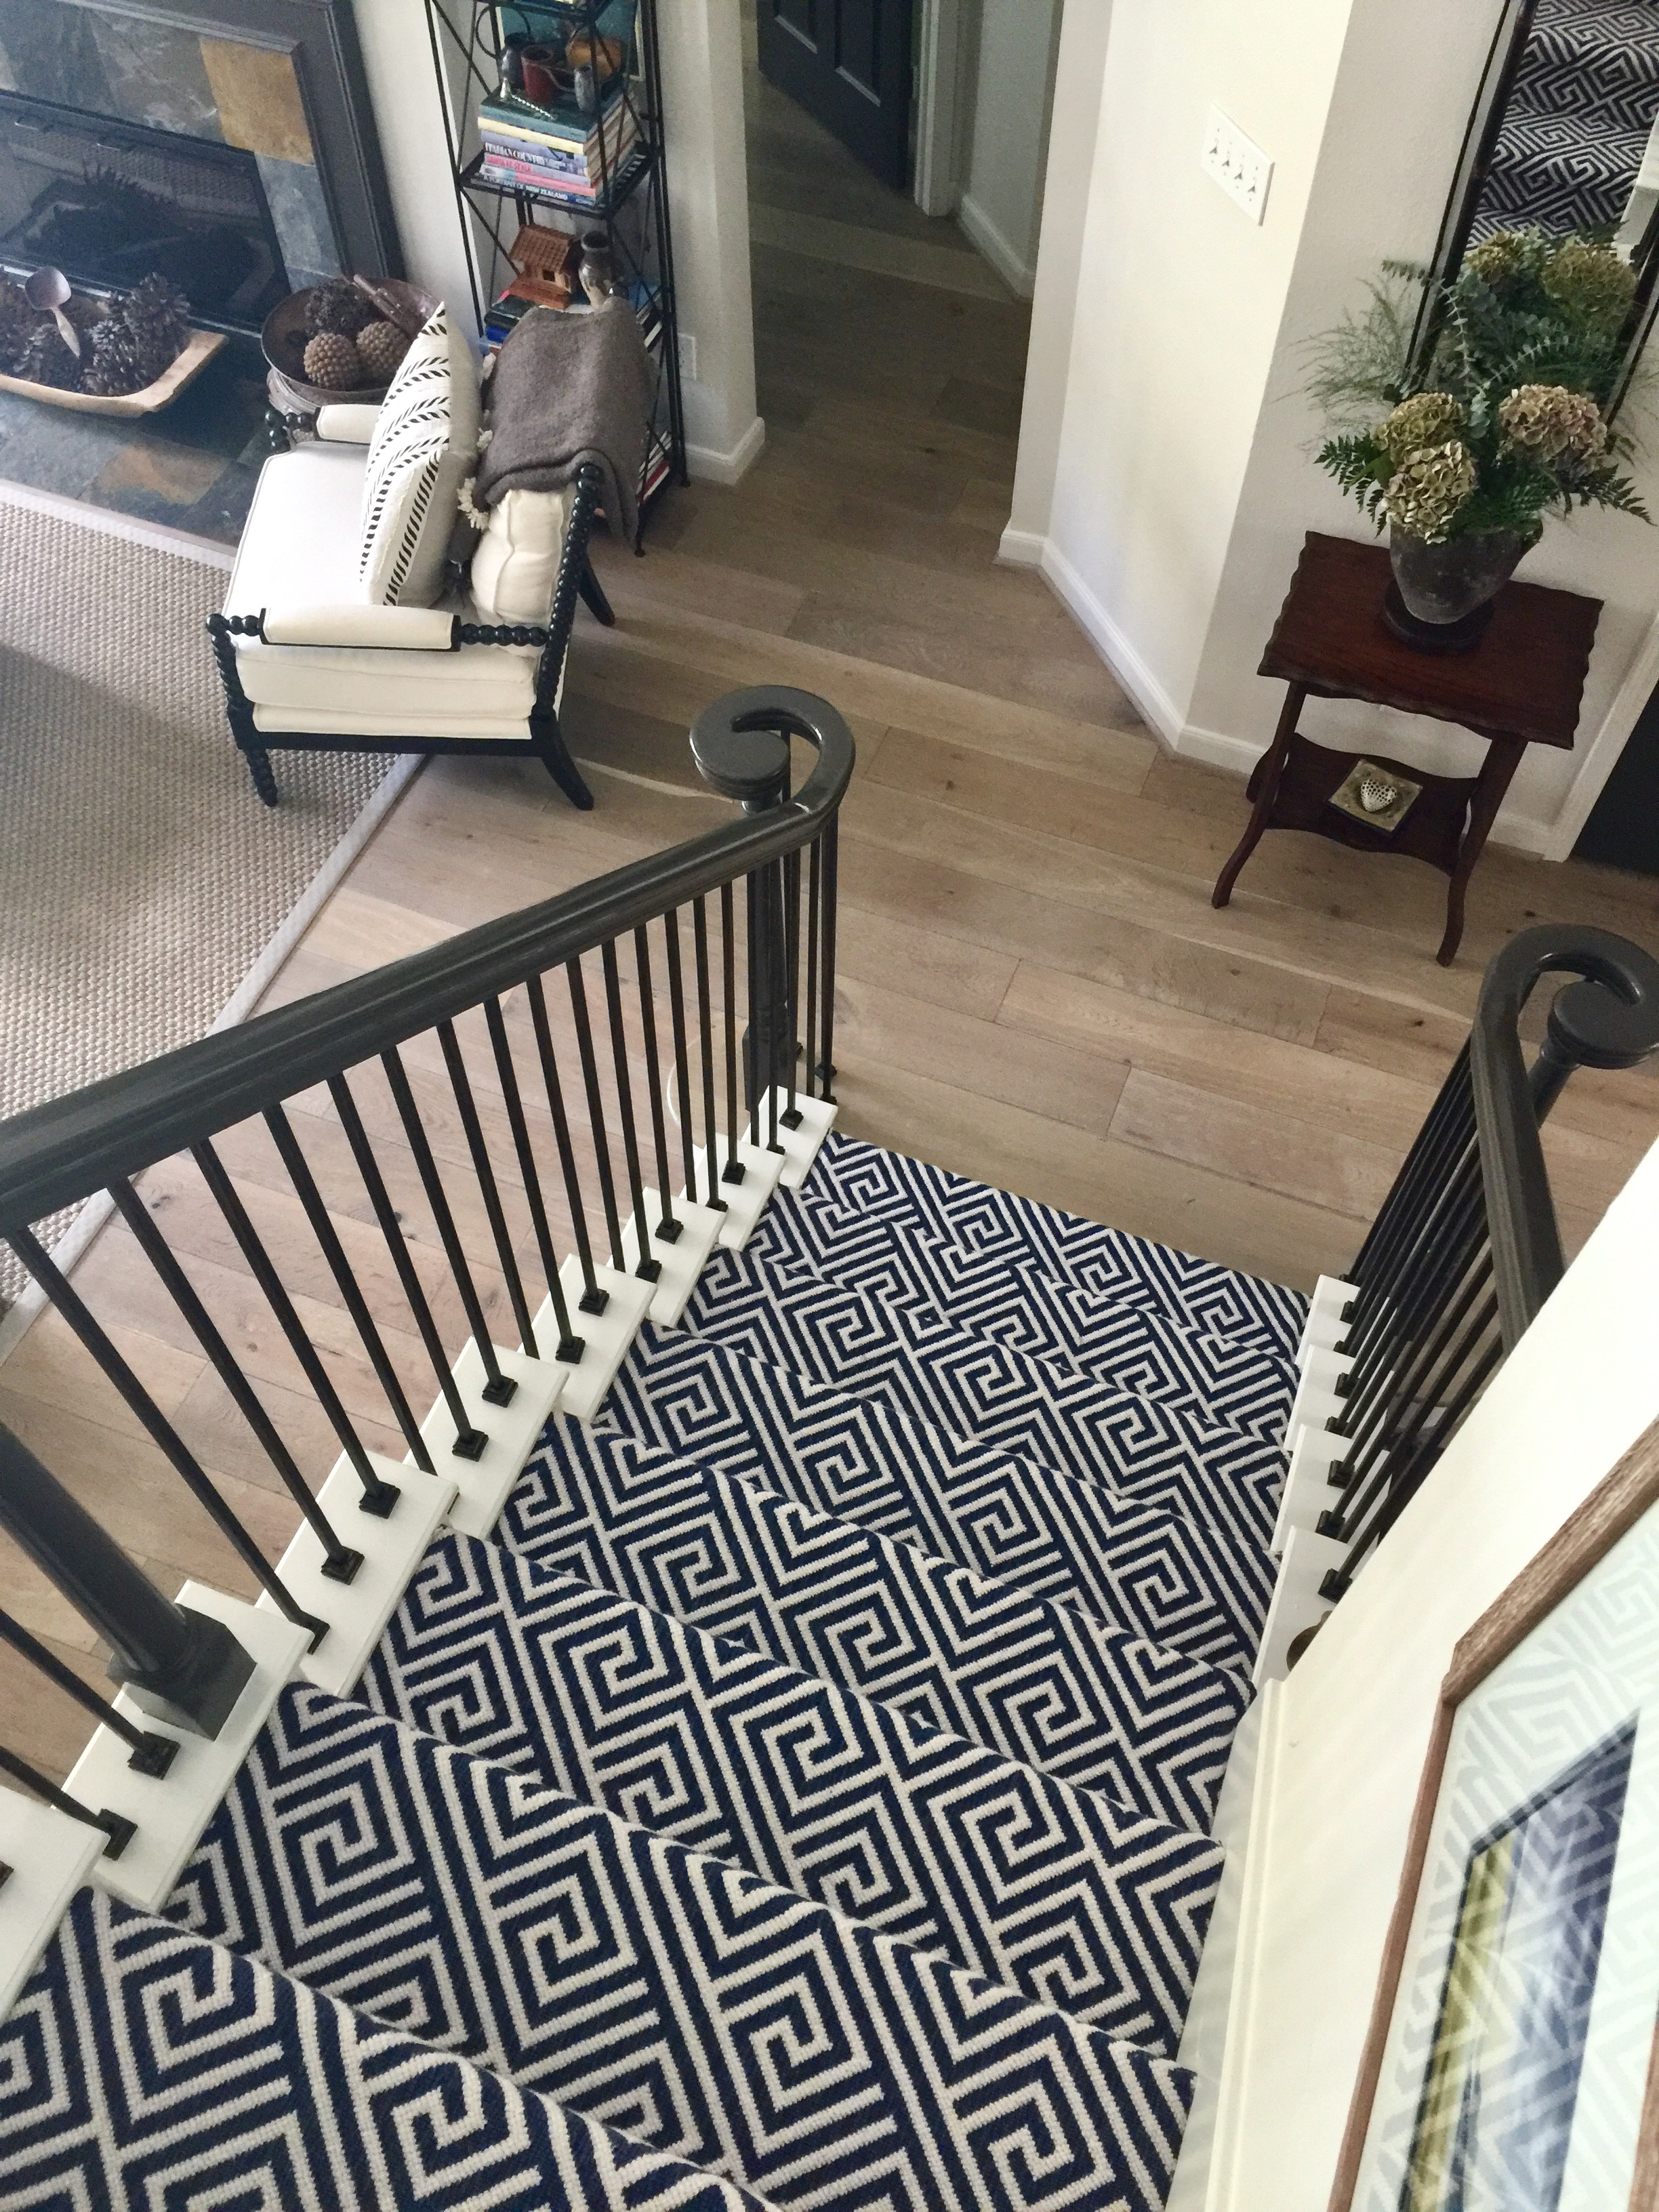 Patterned Carpet Should I Carpet My Stairs With The Same Carpet I Use Upstairs